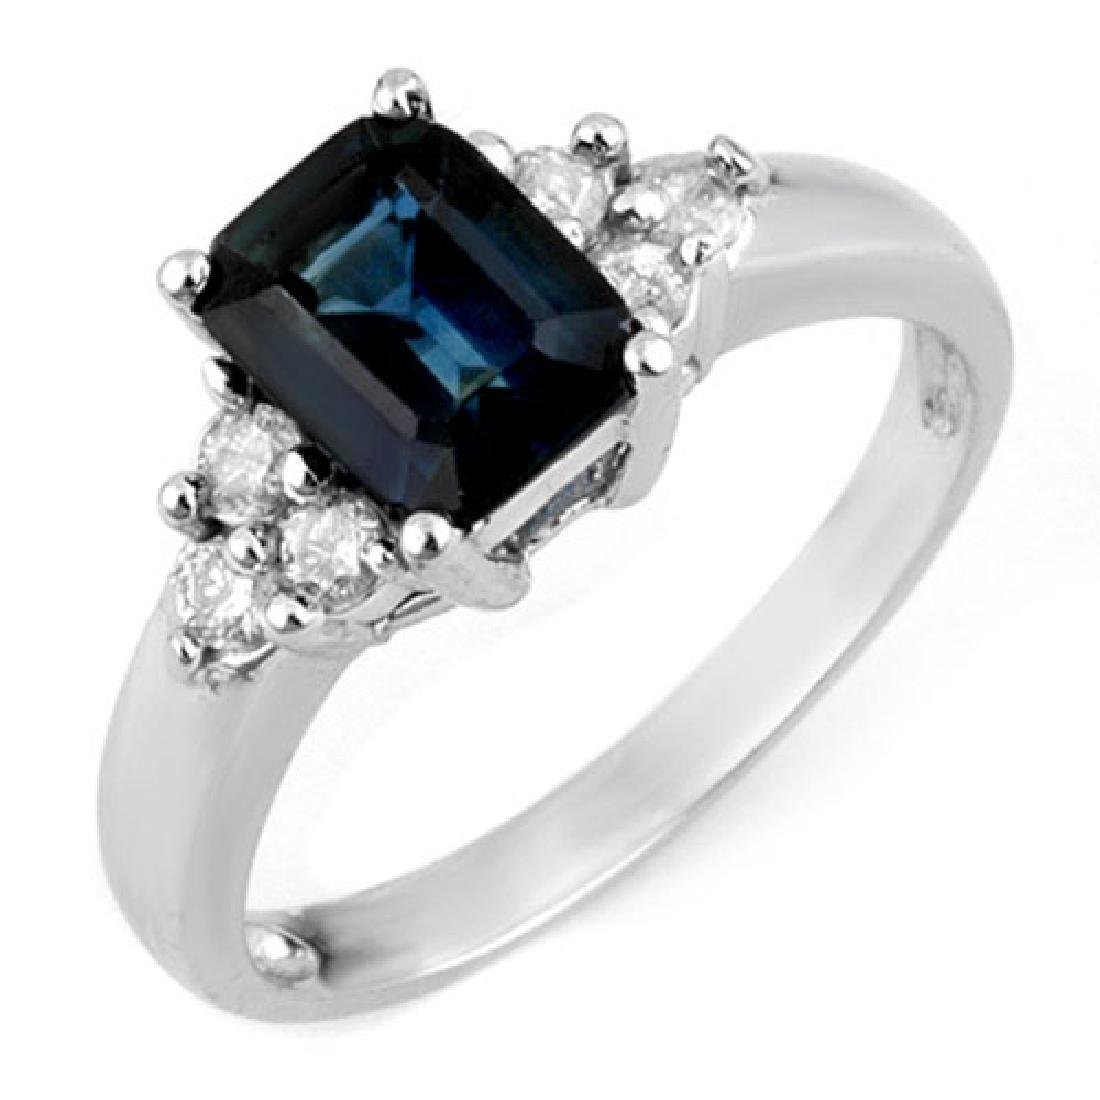 2.66 CTW Blue Sapphire & Diamond Ring 18K White Gold